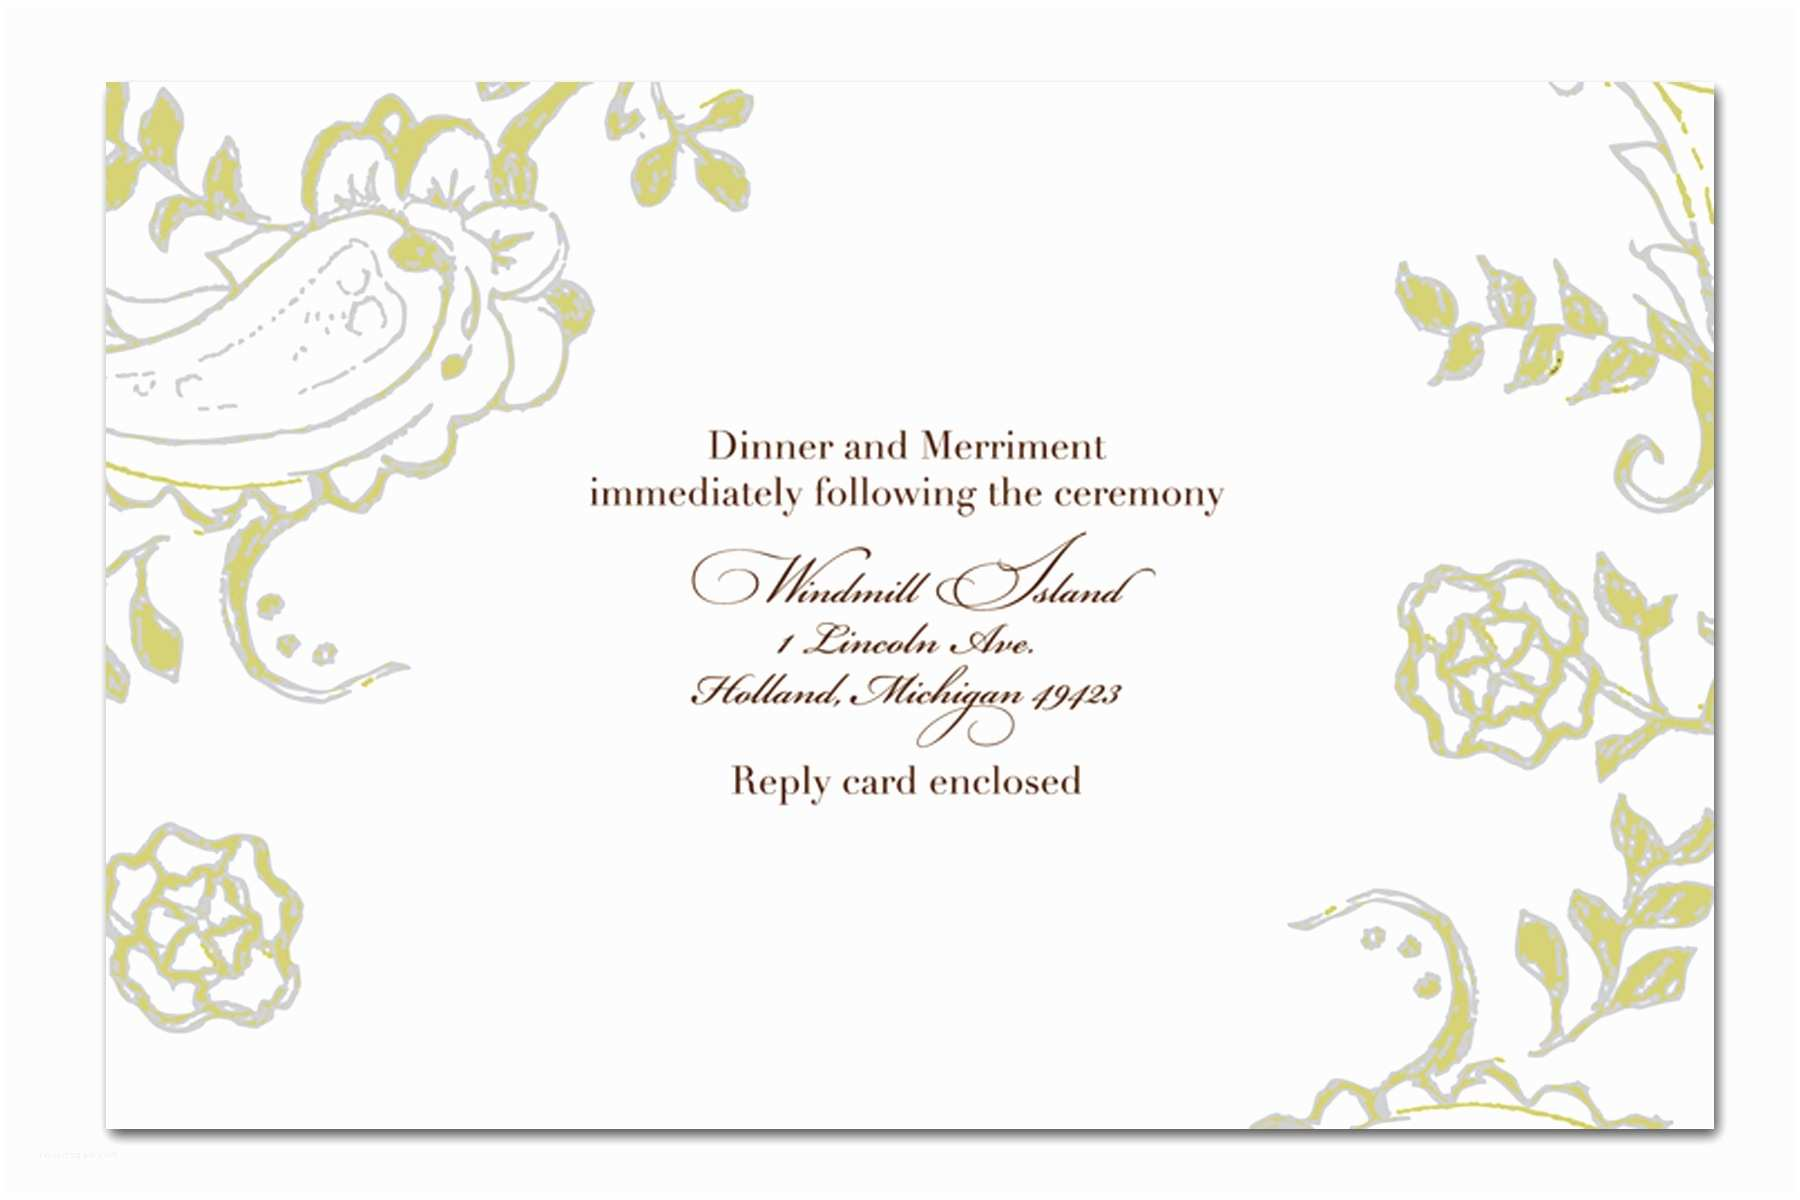 Online Editable Wedding Invitation Cards Free Download Collection Of Thousands Of Invitation Templates From